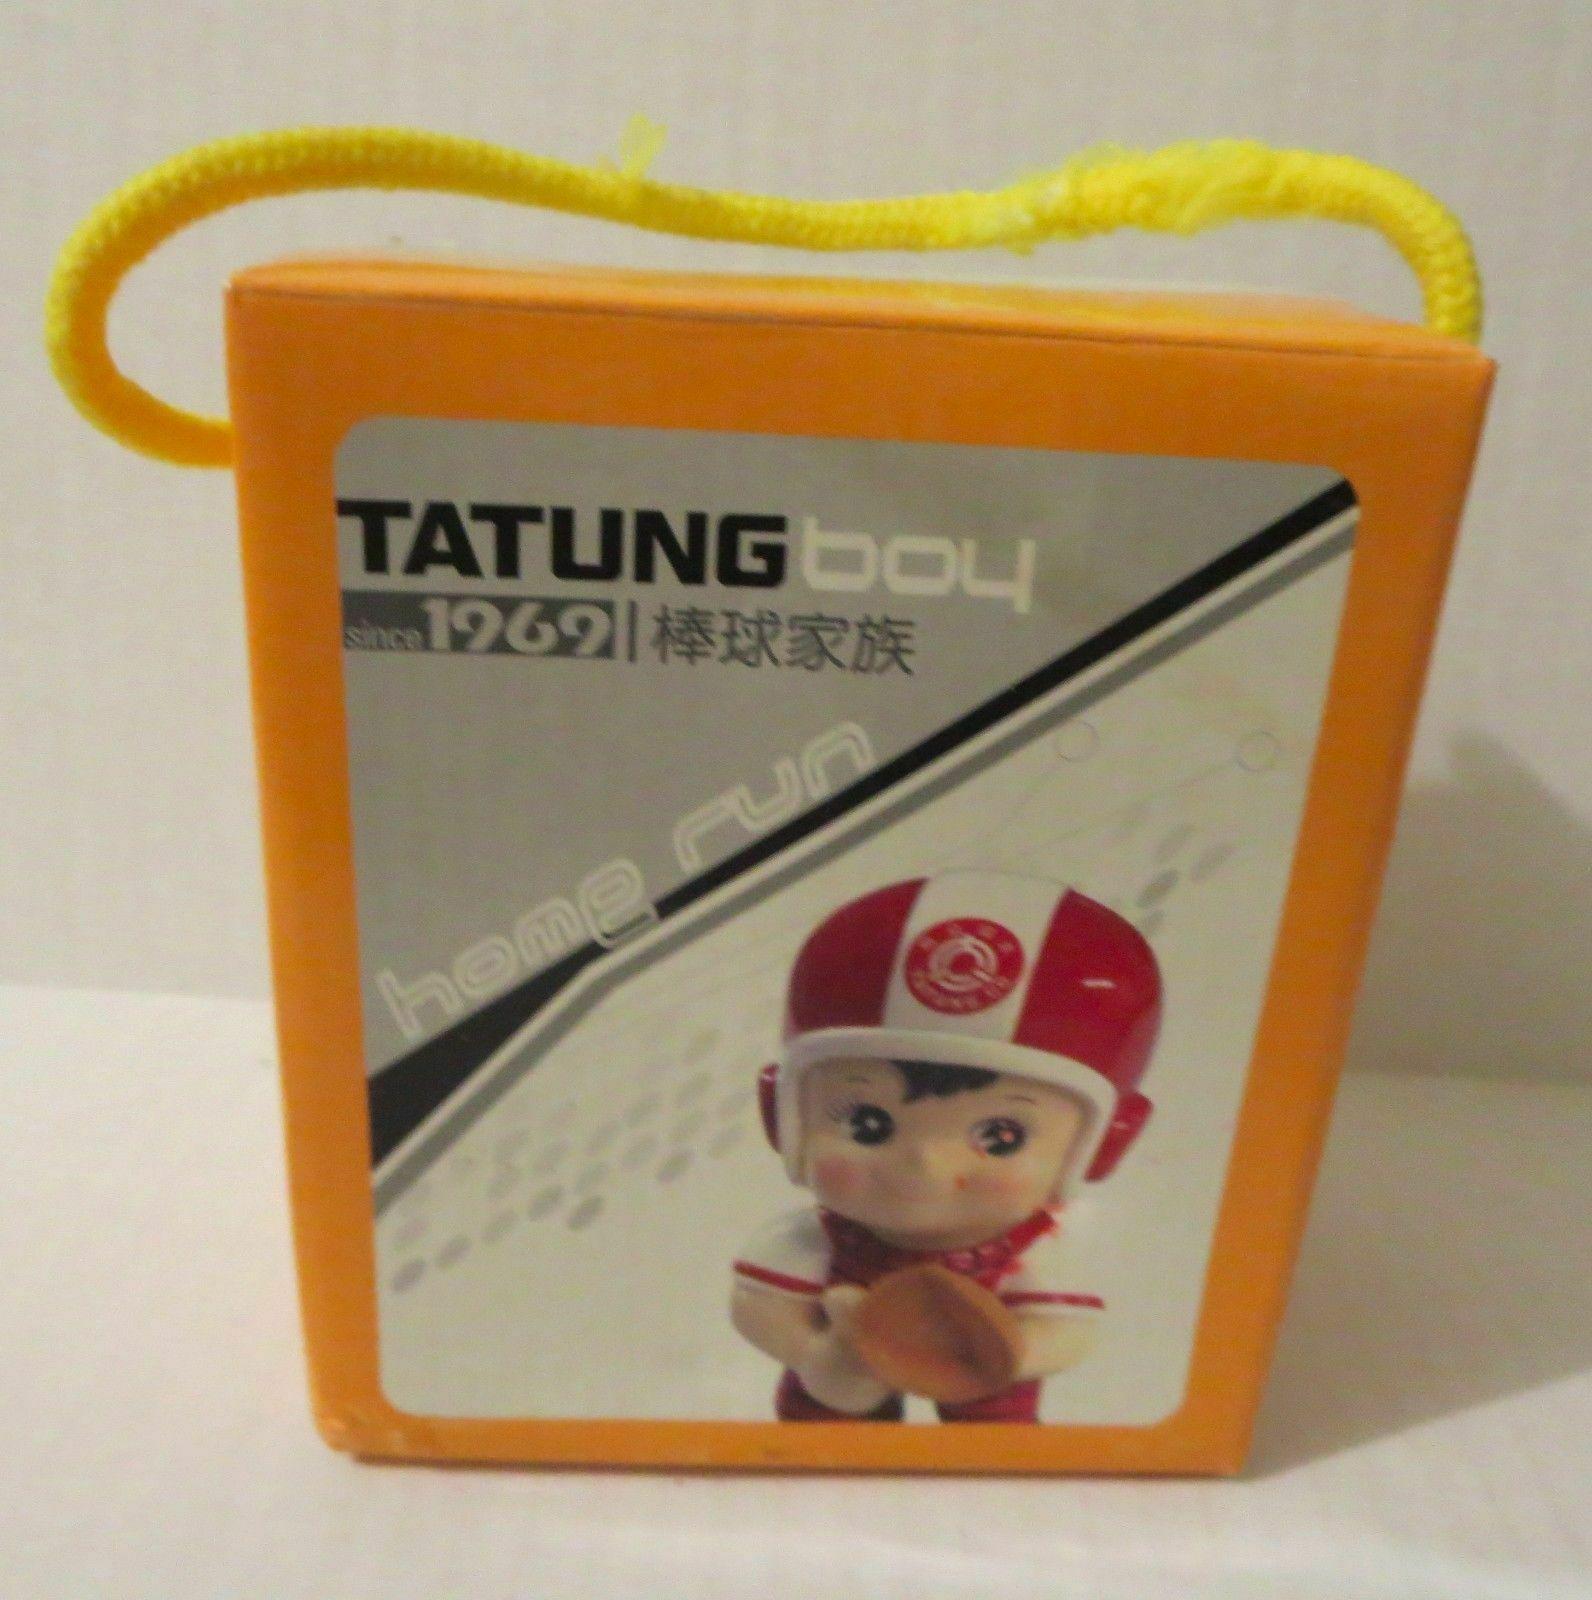 Tatung Boy Mascot Baseball Pitcher Figurine Mounted